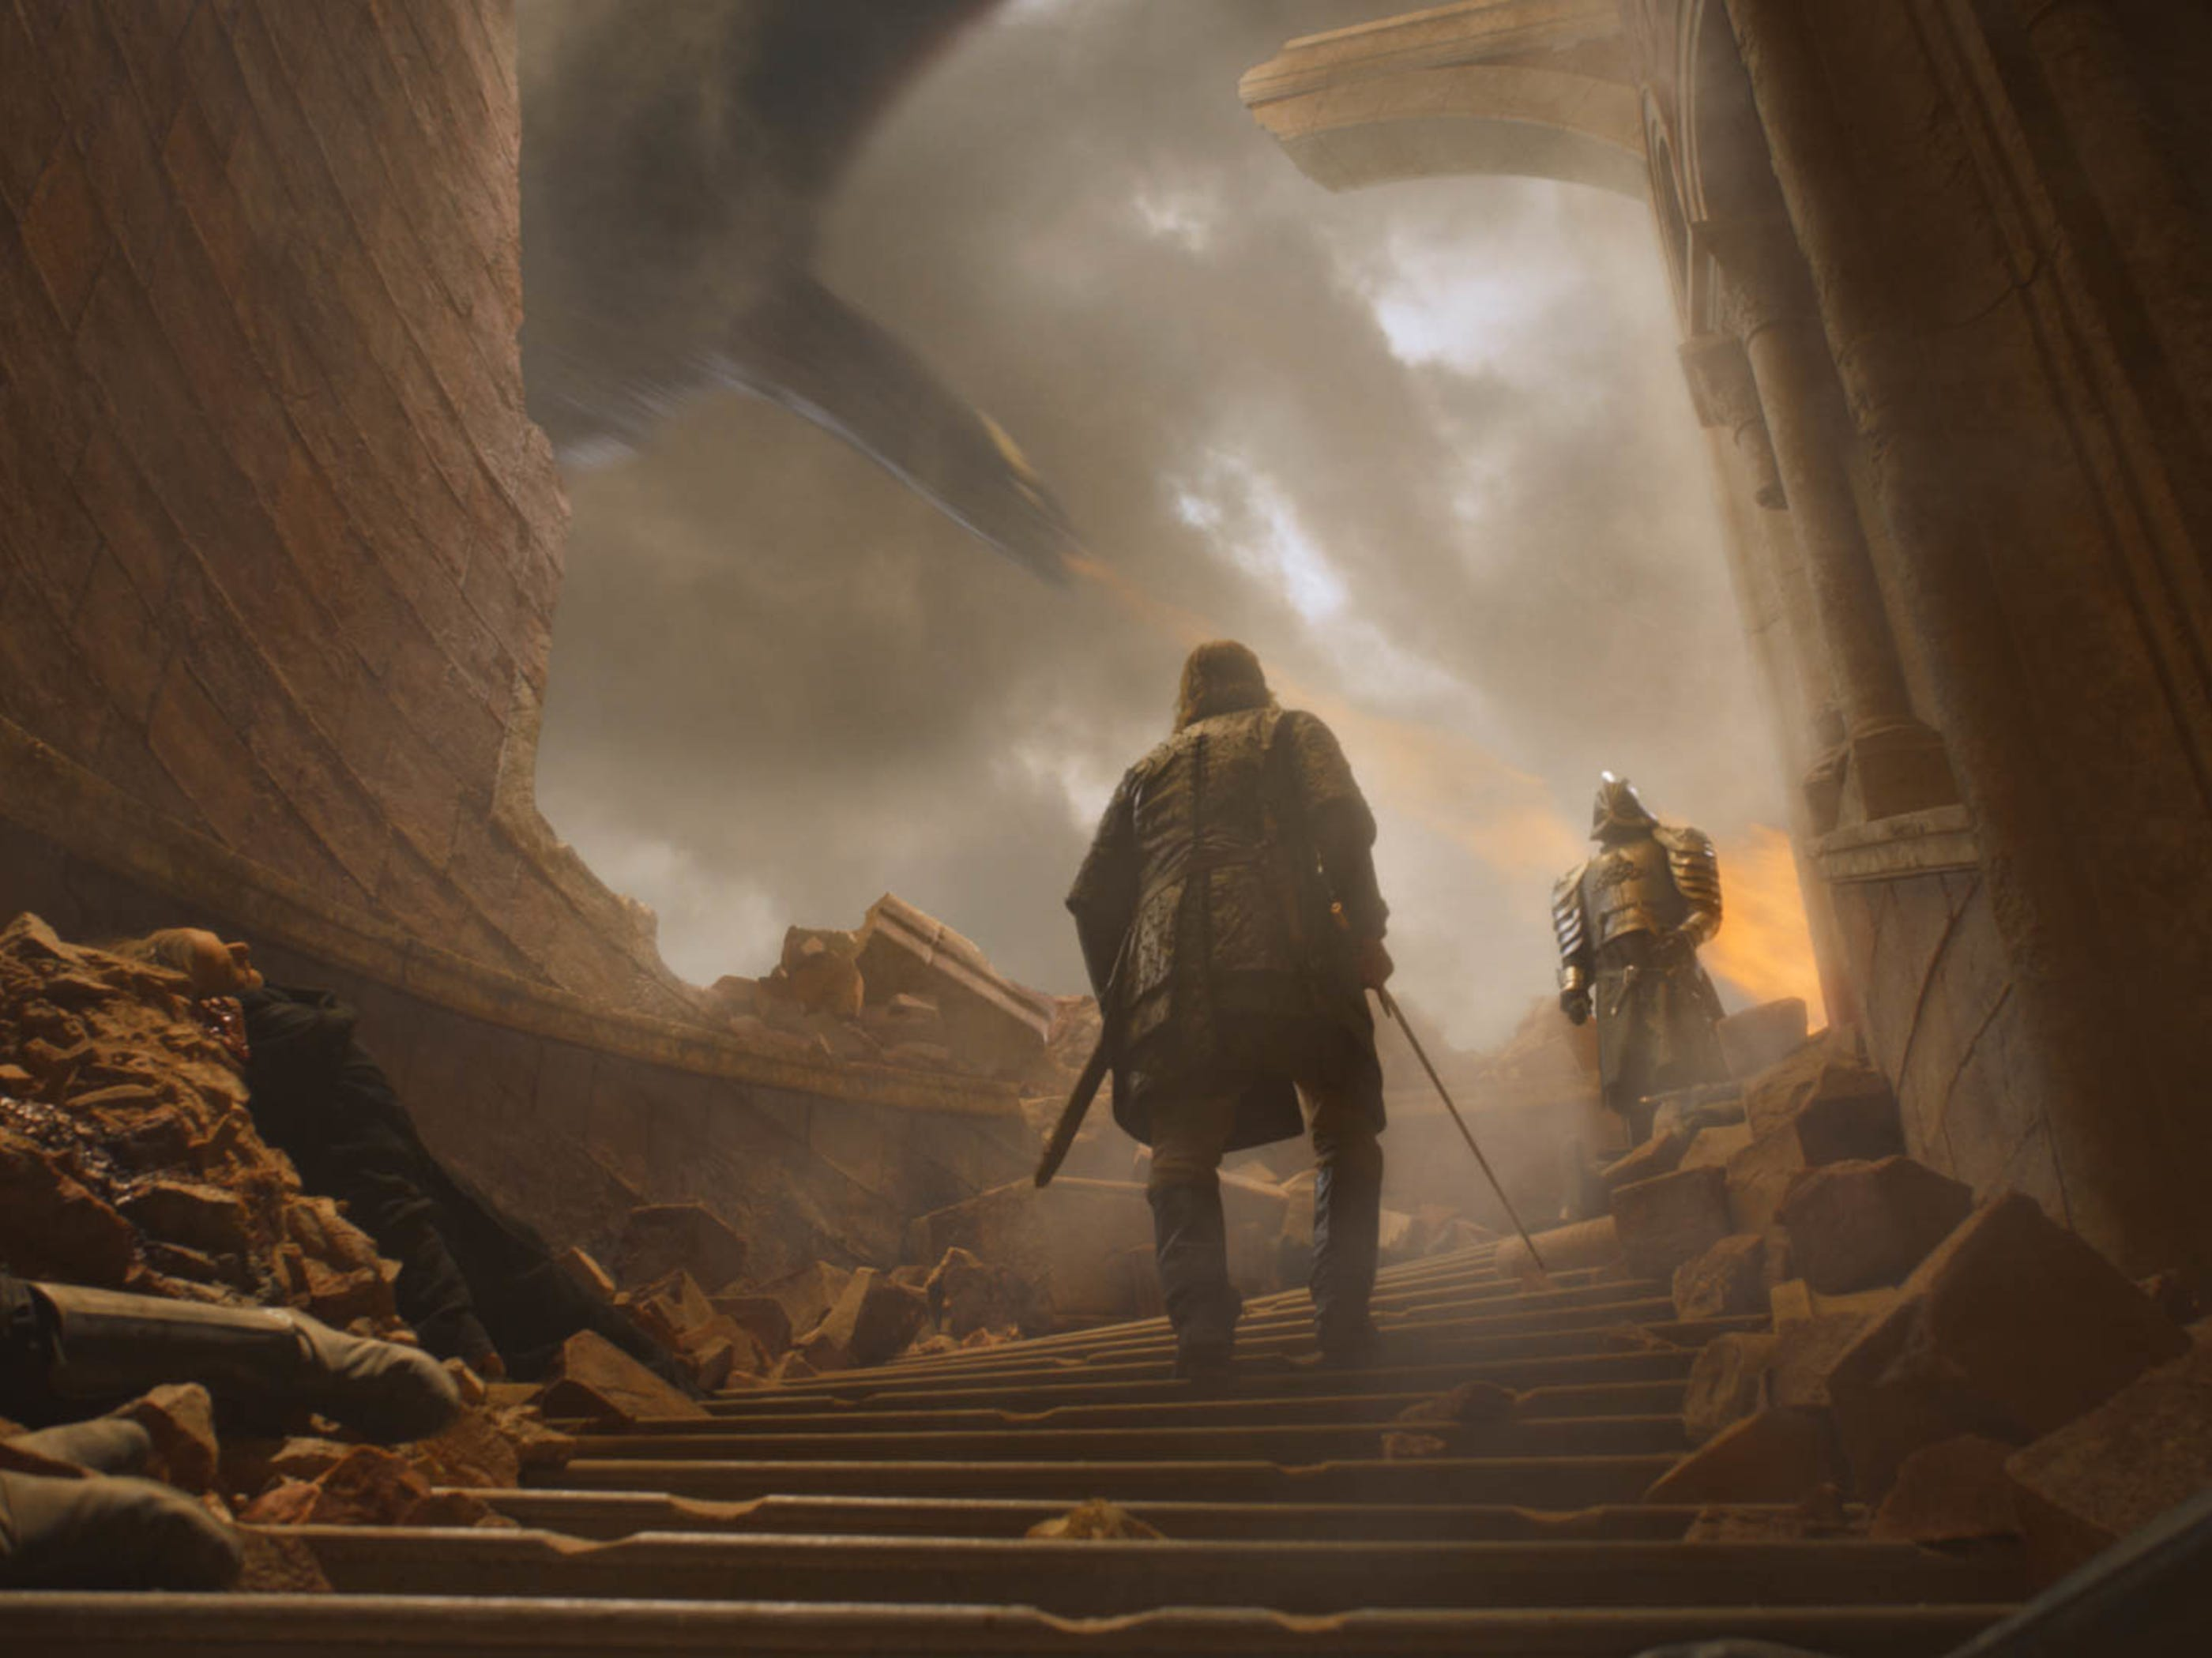 """Sandor """"The Hound"""" Clegane (Rory McCann), left, and Gregor """"The Mountain"""" Clegane (Hafþór Júlíus Björnsson) prepare to face off in the first - and last - annual Cleganebowl."""